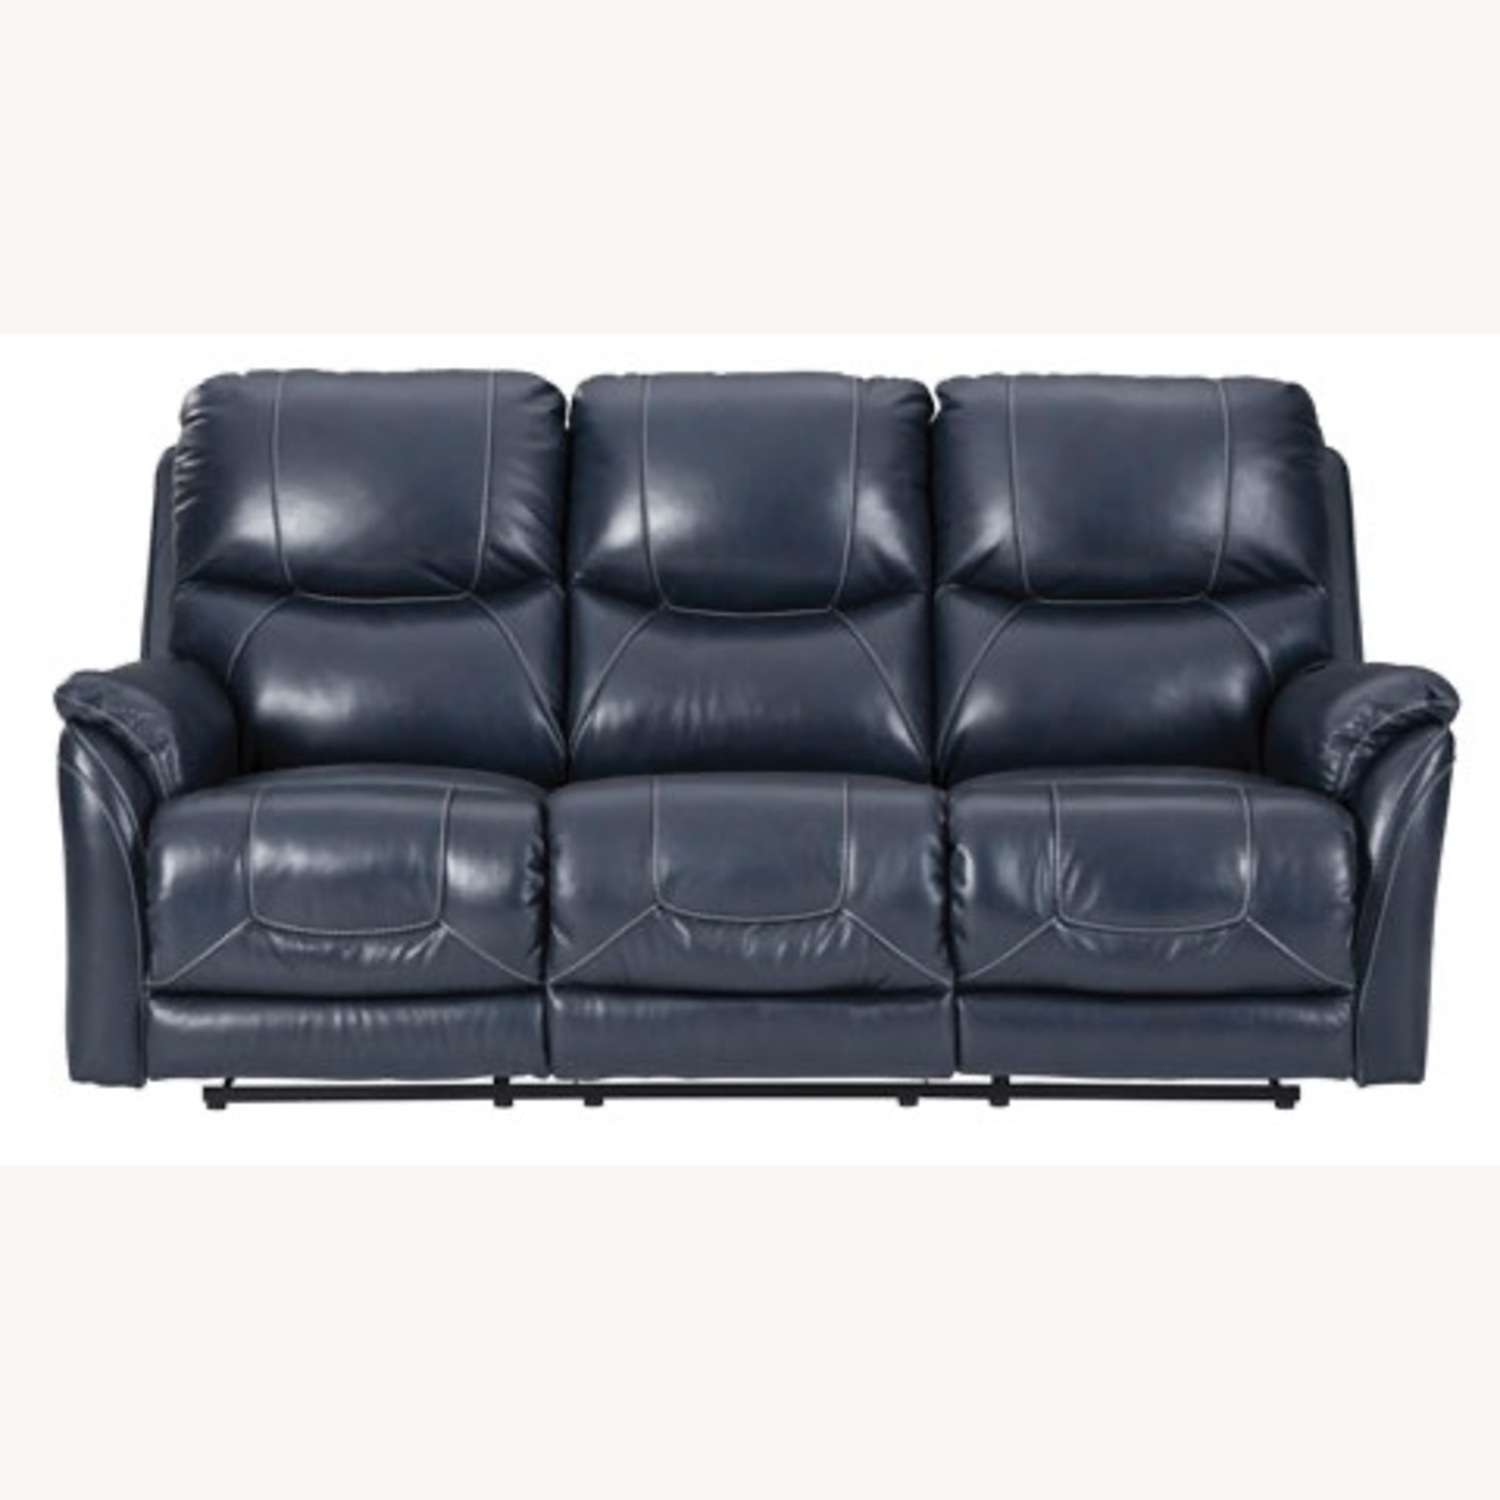 Ashley Furniture Genuine Leather Power Reclining Sofa - image-7